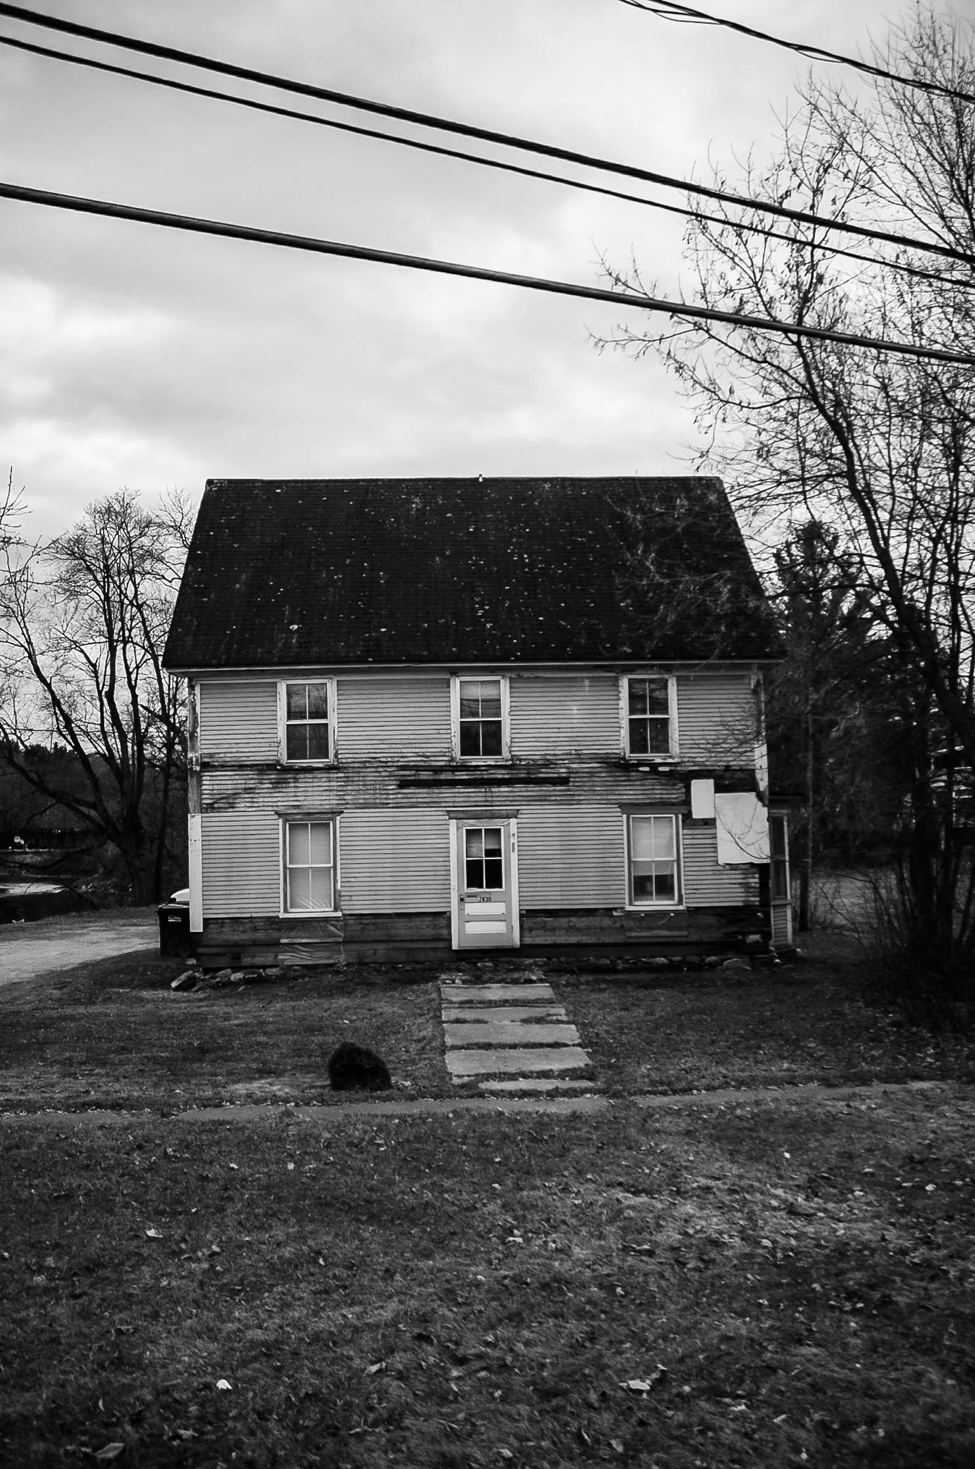 [Image description: black and white photograph of an old wooden house. There is a dark crack running horizontally across the front of the house, and a worn stone pathway leading up to the front door.]  Nanette Thiam